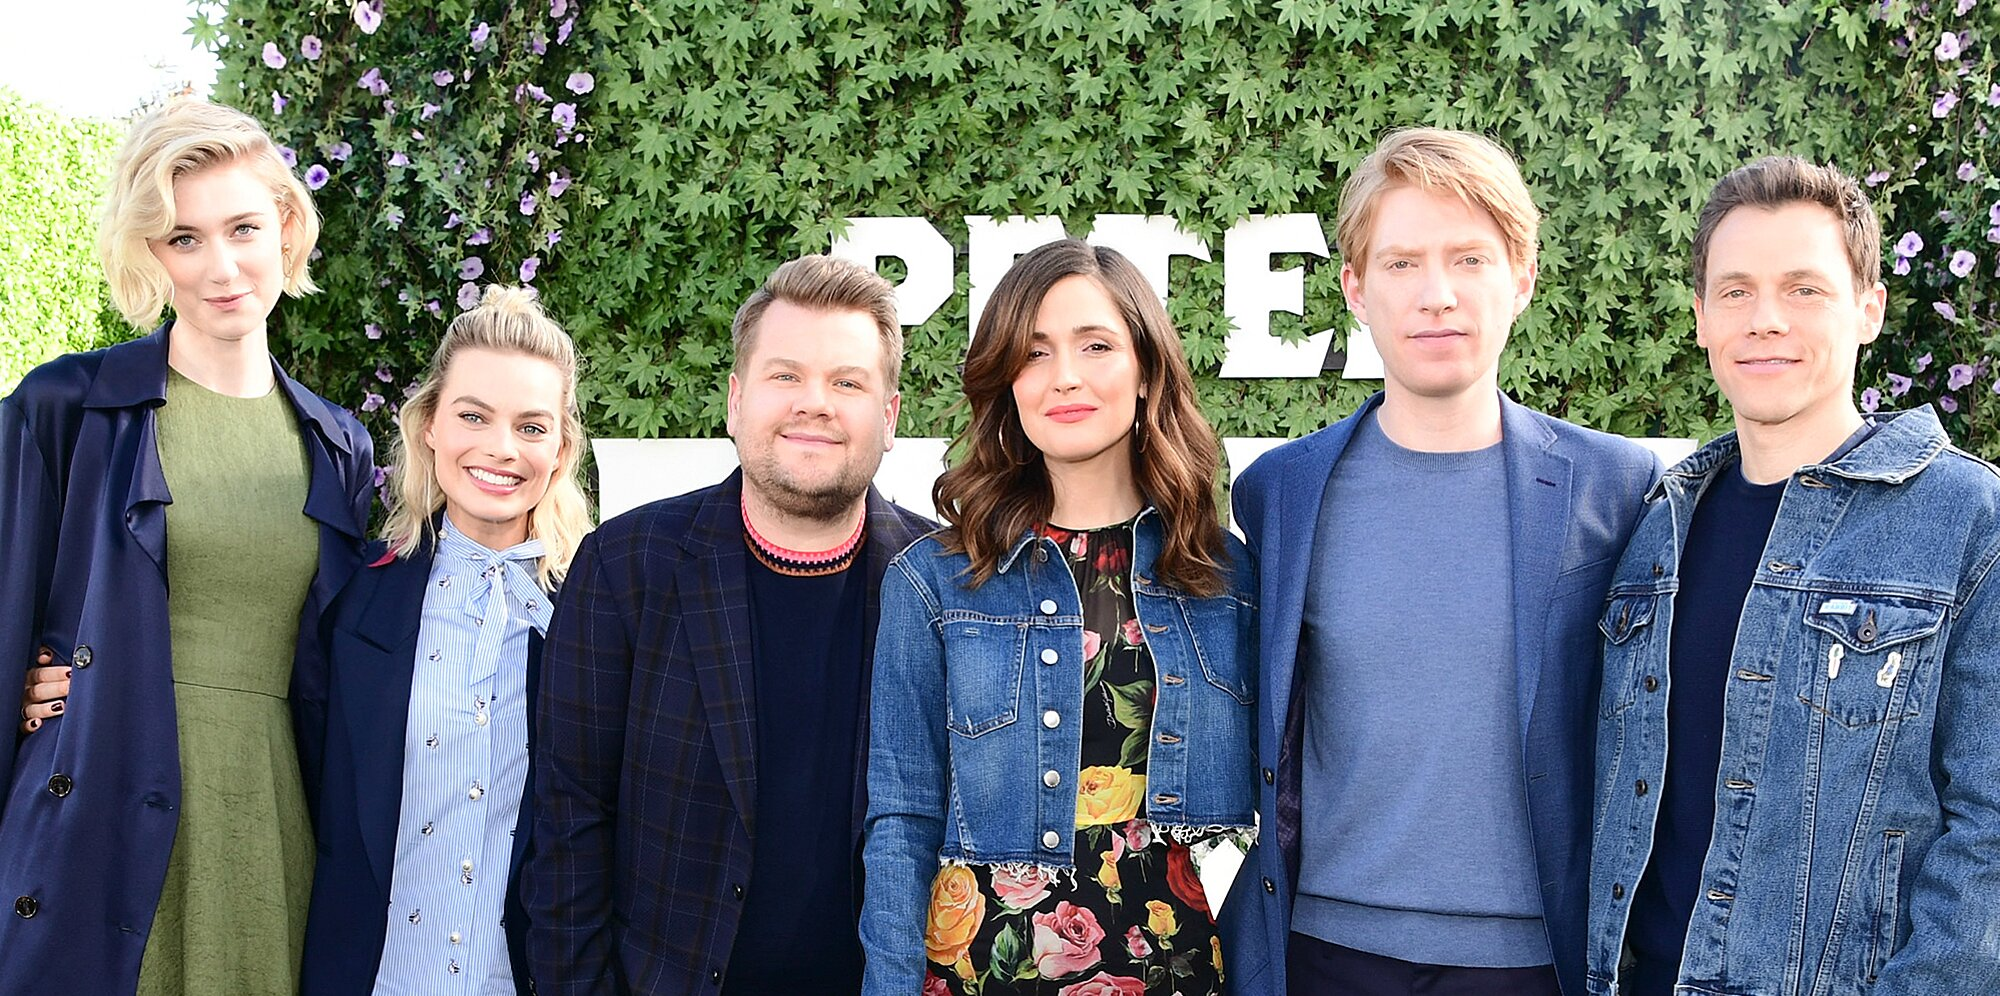 Peter Rabbit 2 Cast Answers Kids' Questions About Best Friends, Talking Animals and Prince Harry.jpg